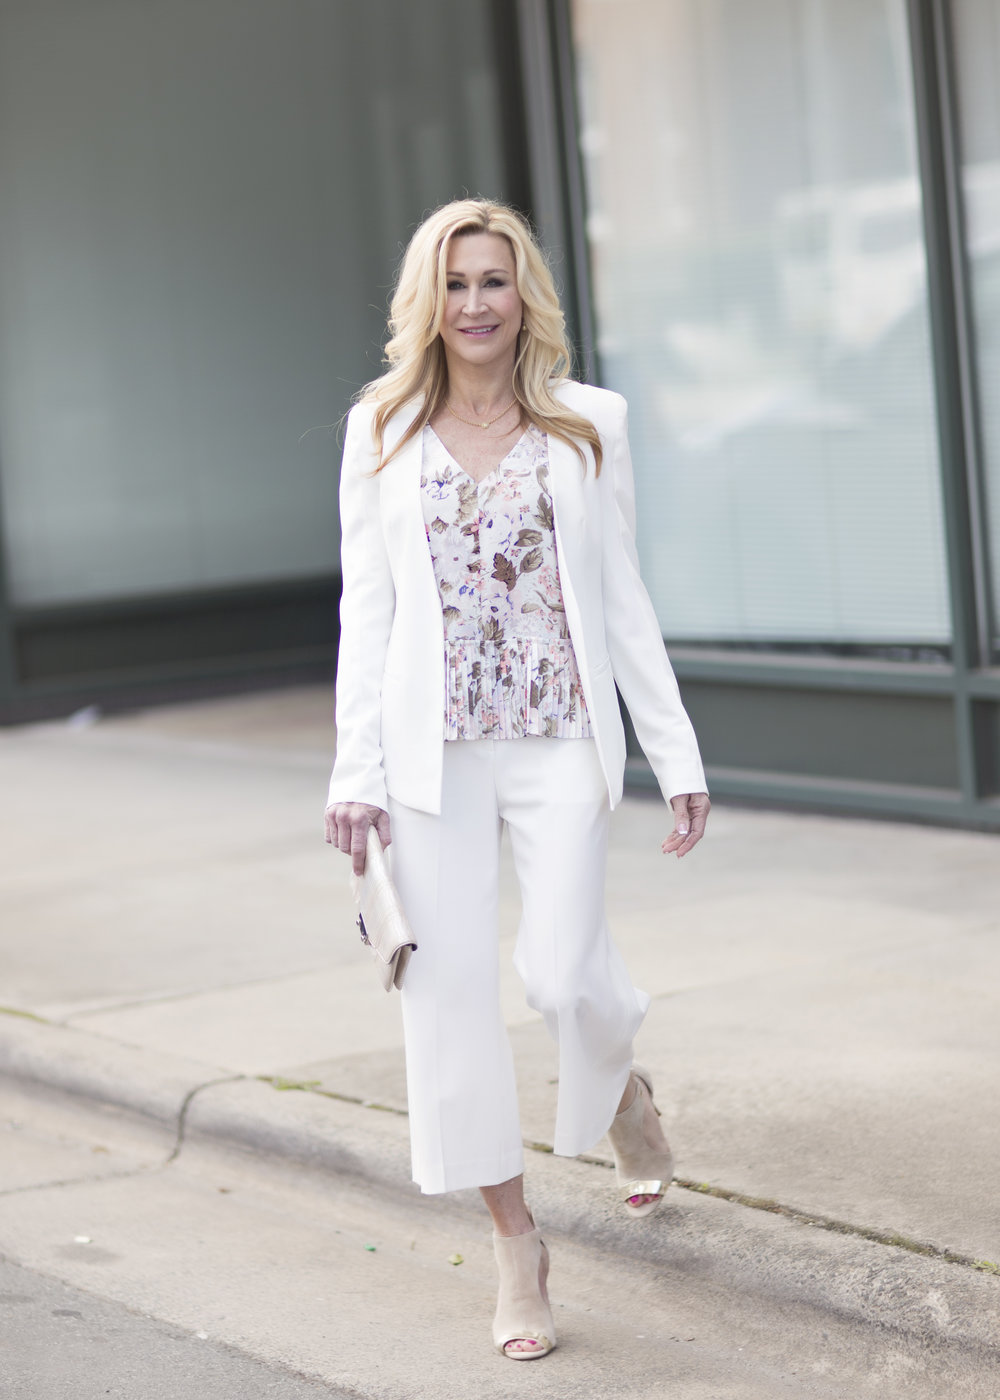 Spring Suit Paired with Rebecca Taylor Blouse